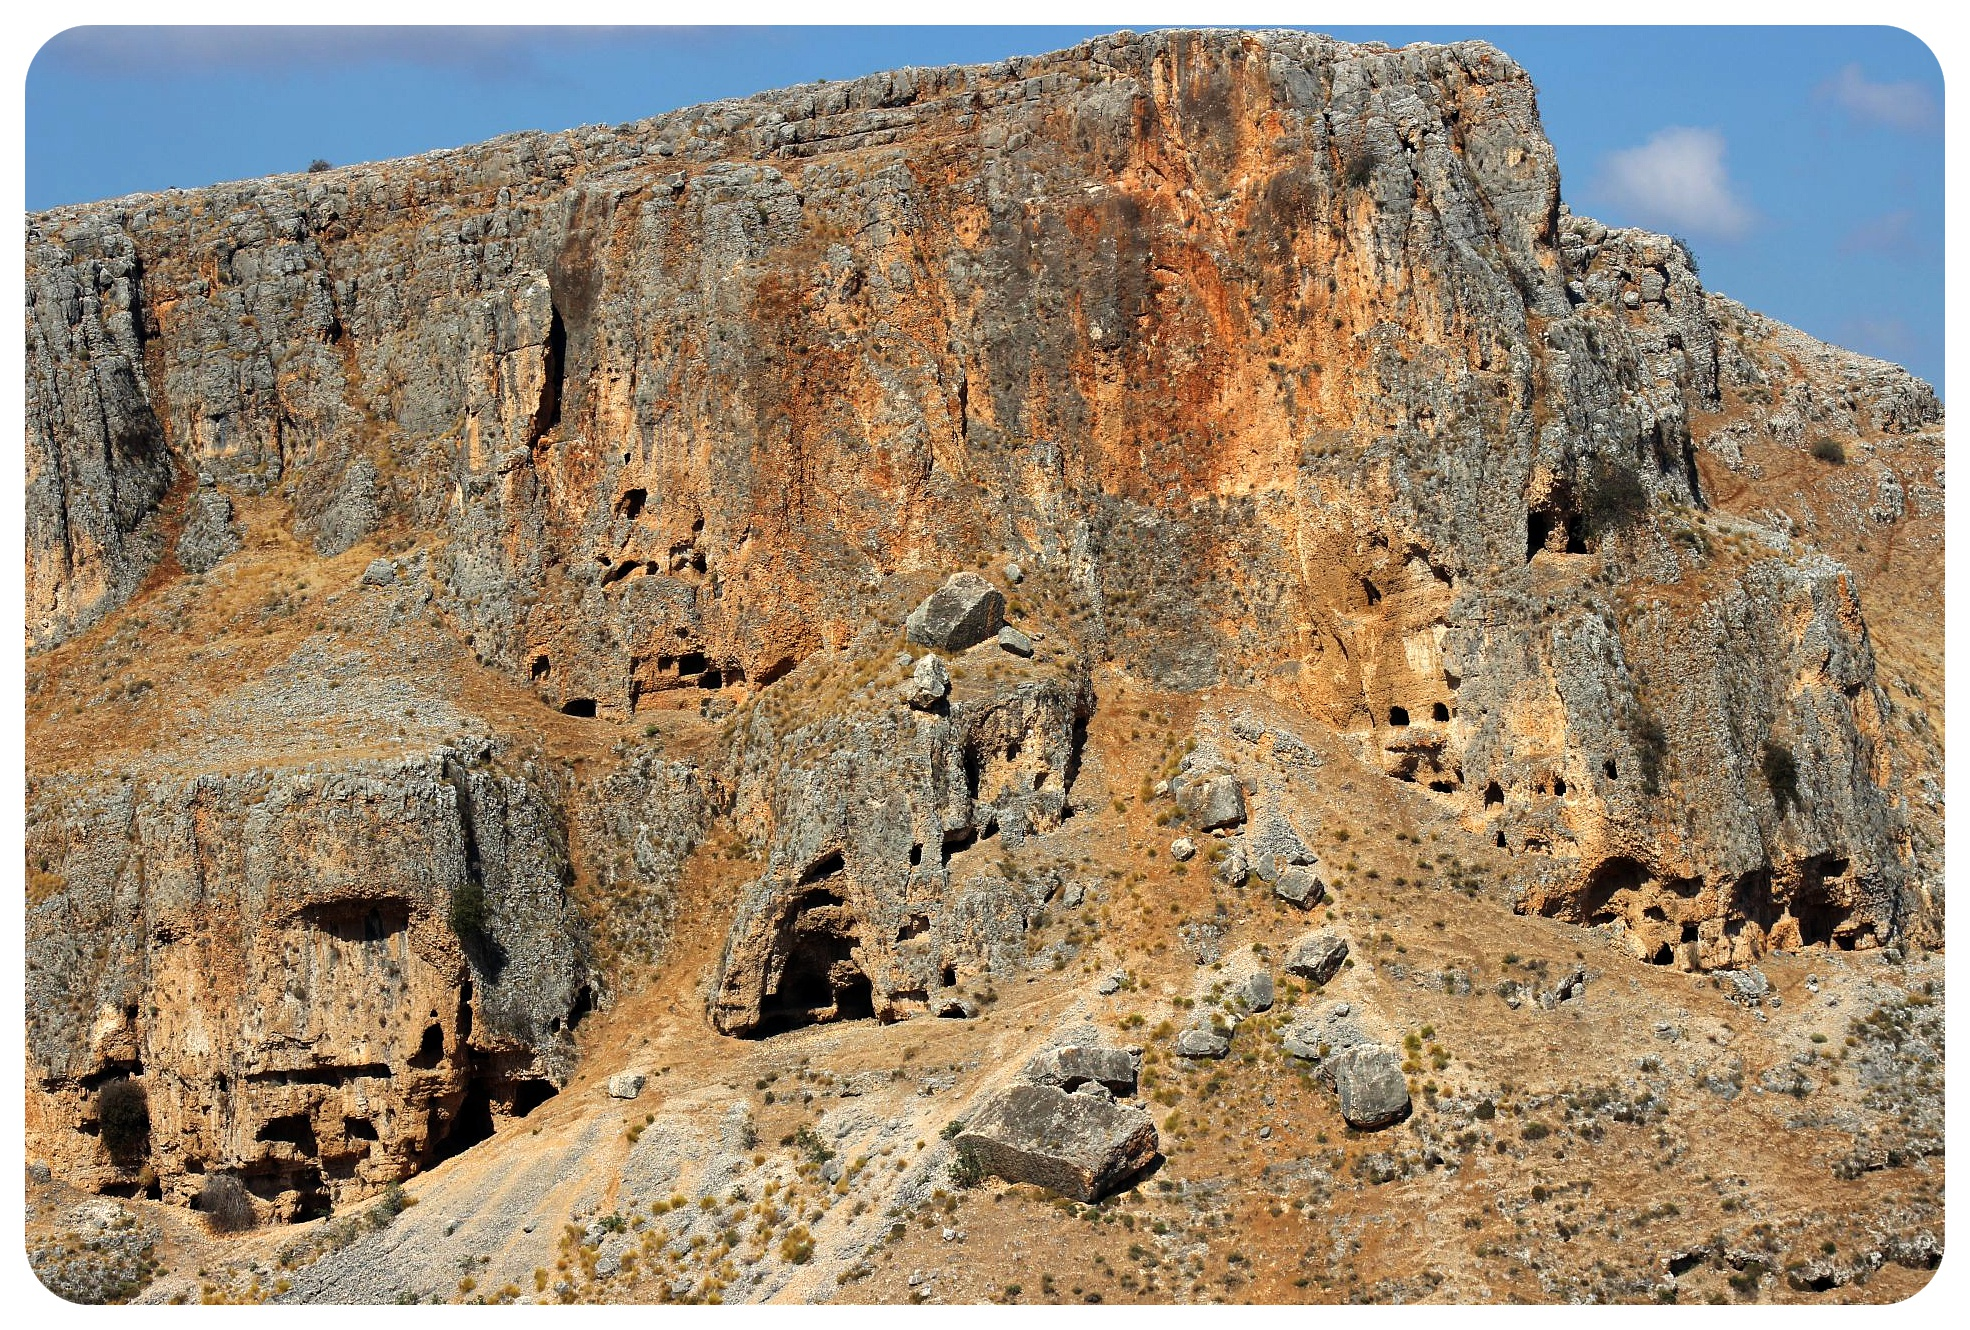 israel national trail mount arbel cliffs